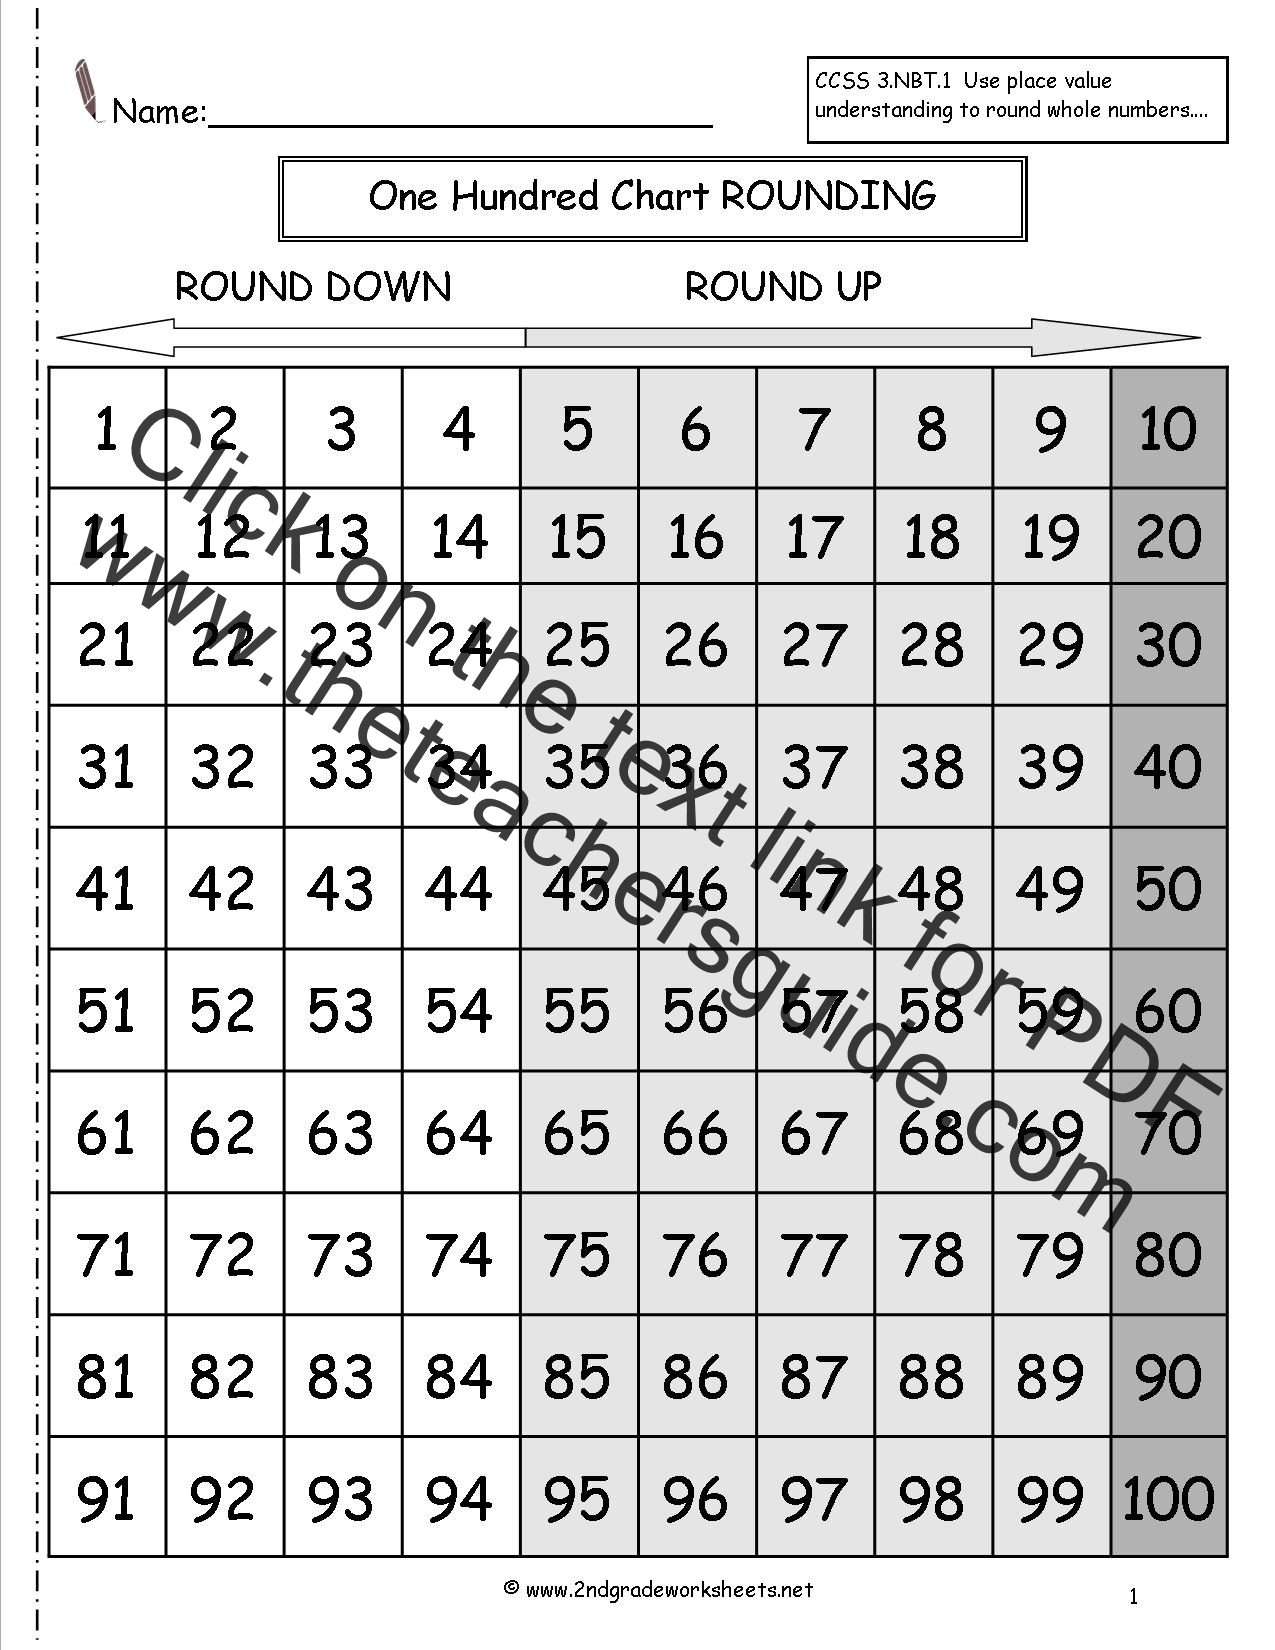 Uncategorized Rounding Numbers Worksheet rounding whole numbers worksheets one hundred chart worksheet